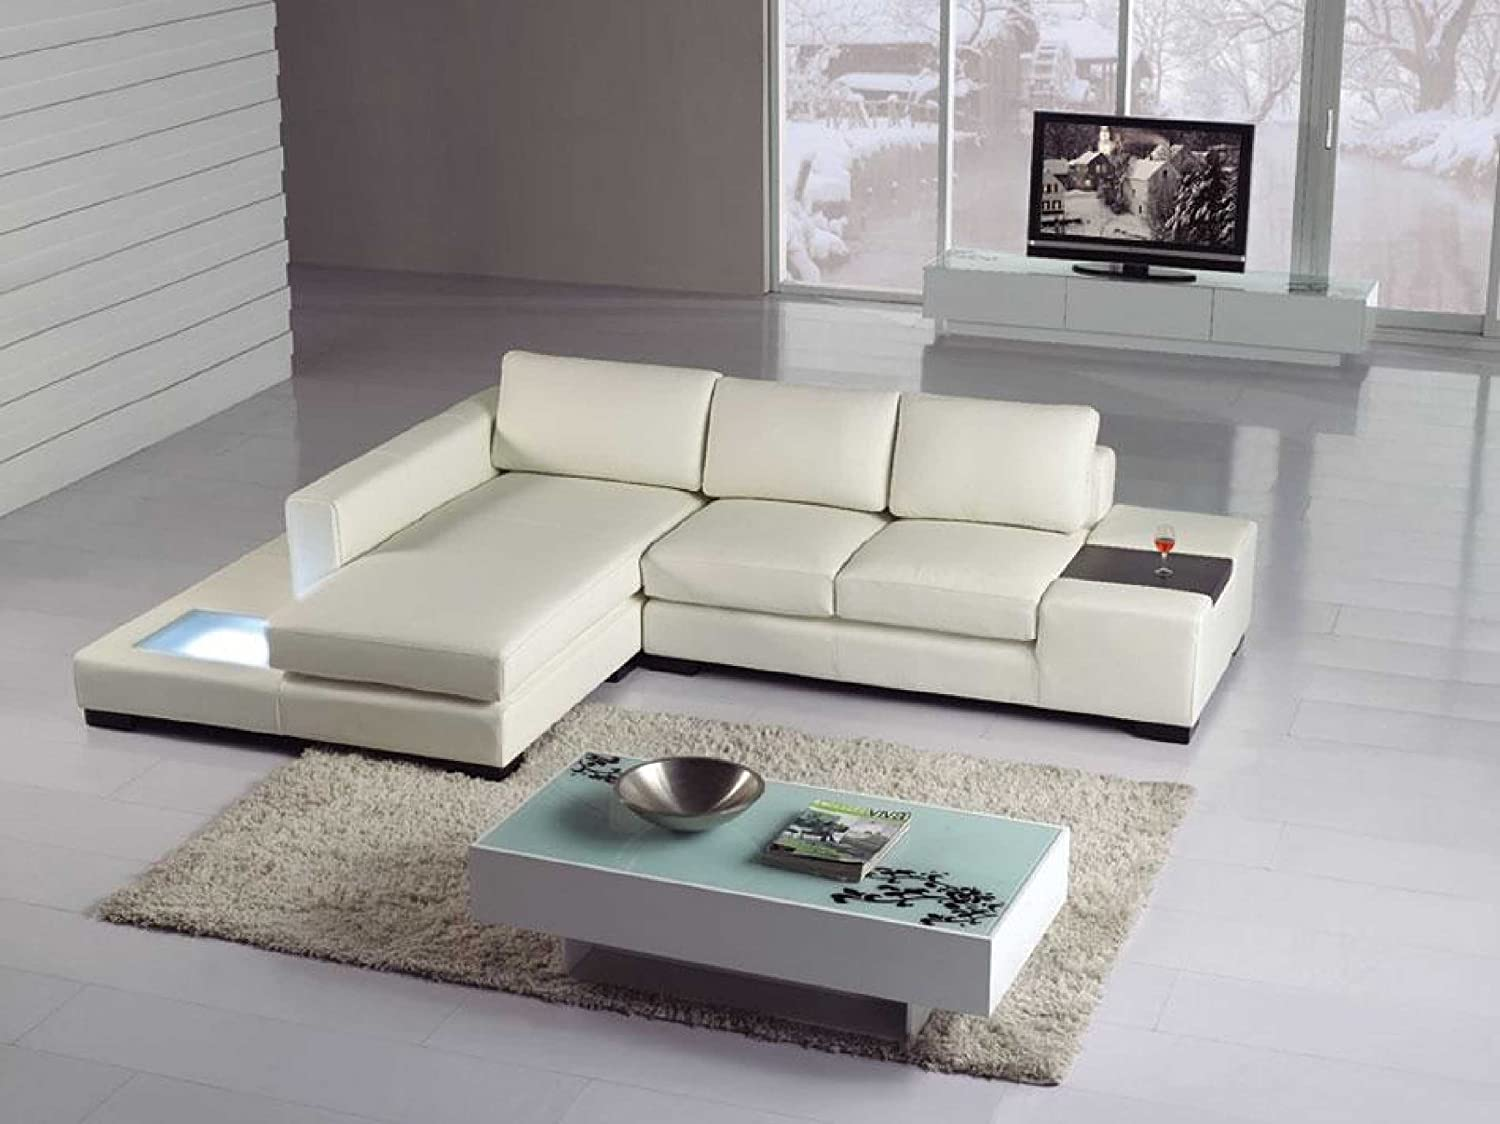 sofa home sectional modern leather photos of pics chic in amazing contemporary furniture upholstered